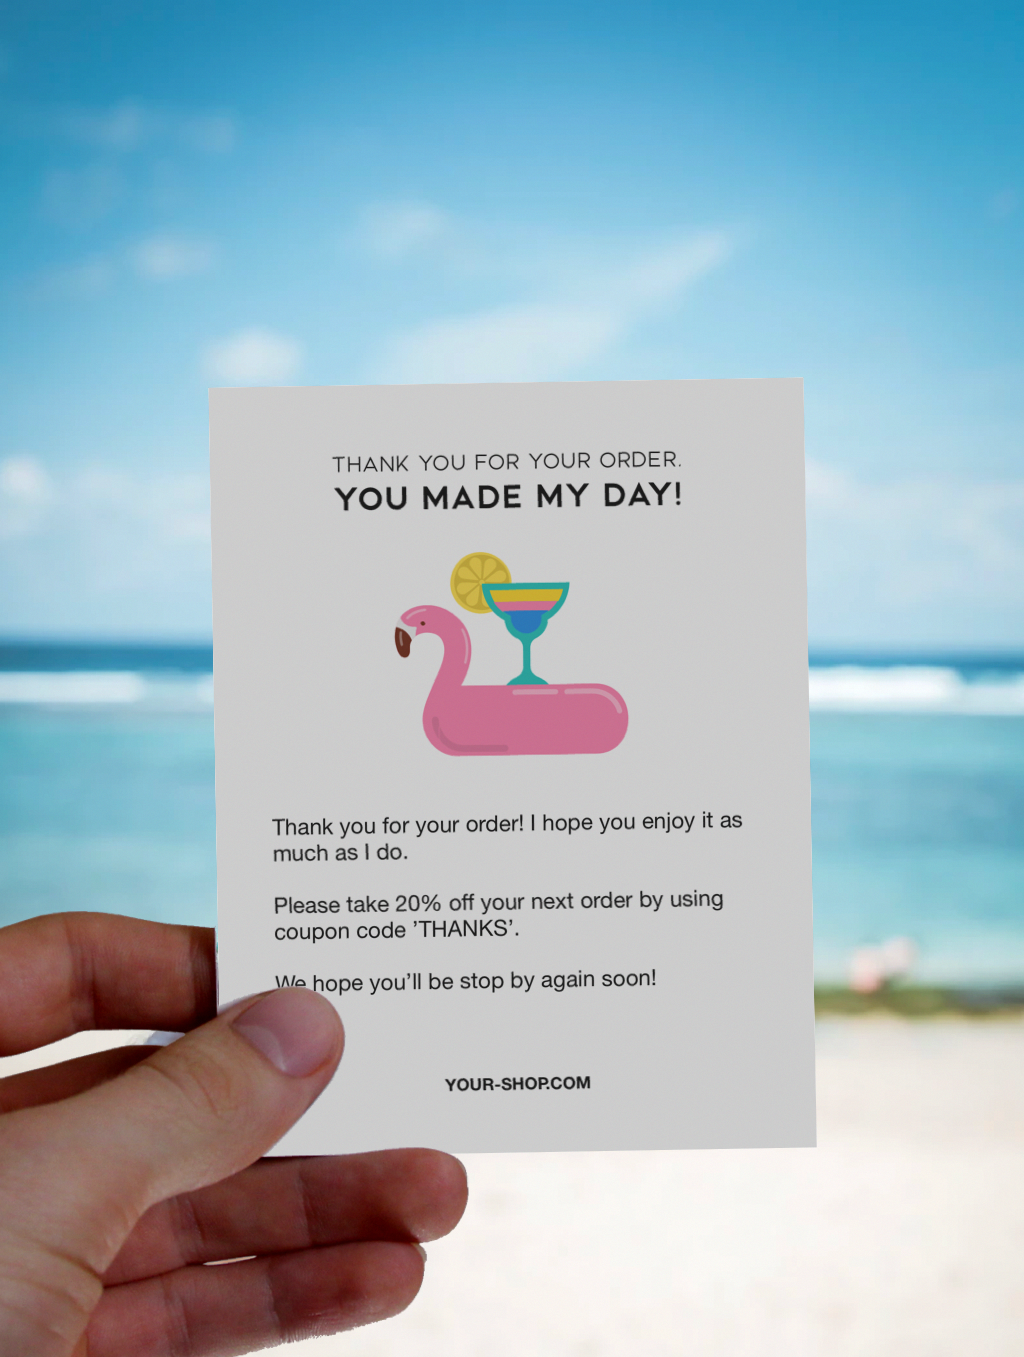 Thank You For Your Order. You Made My Day - Flamingo and Summer Drink. Thank You Packaging Insert for Summer. #businessthankyoucards